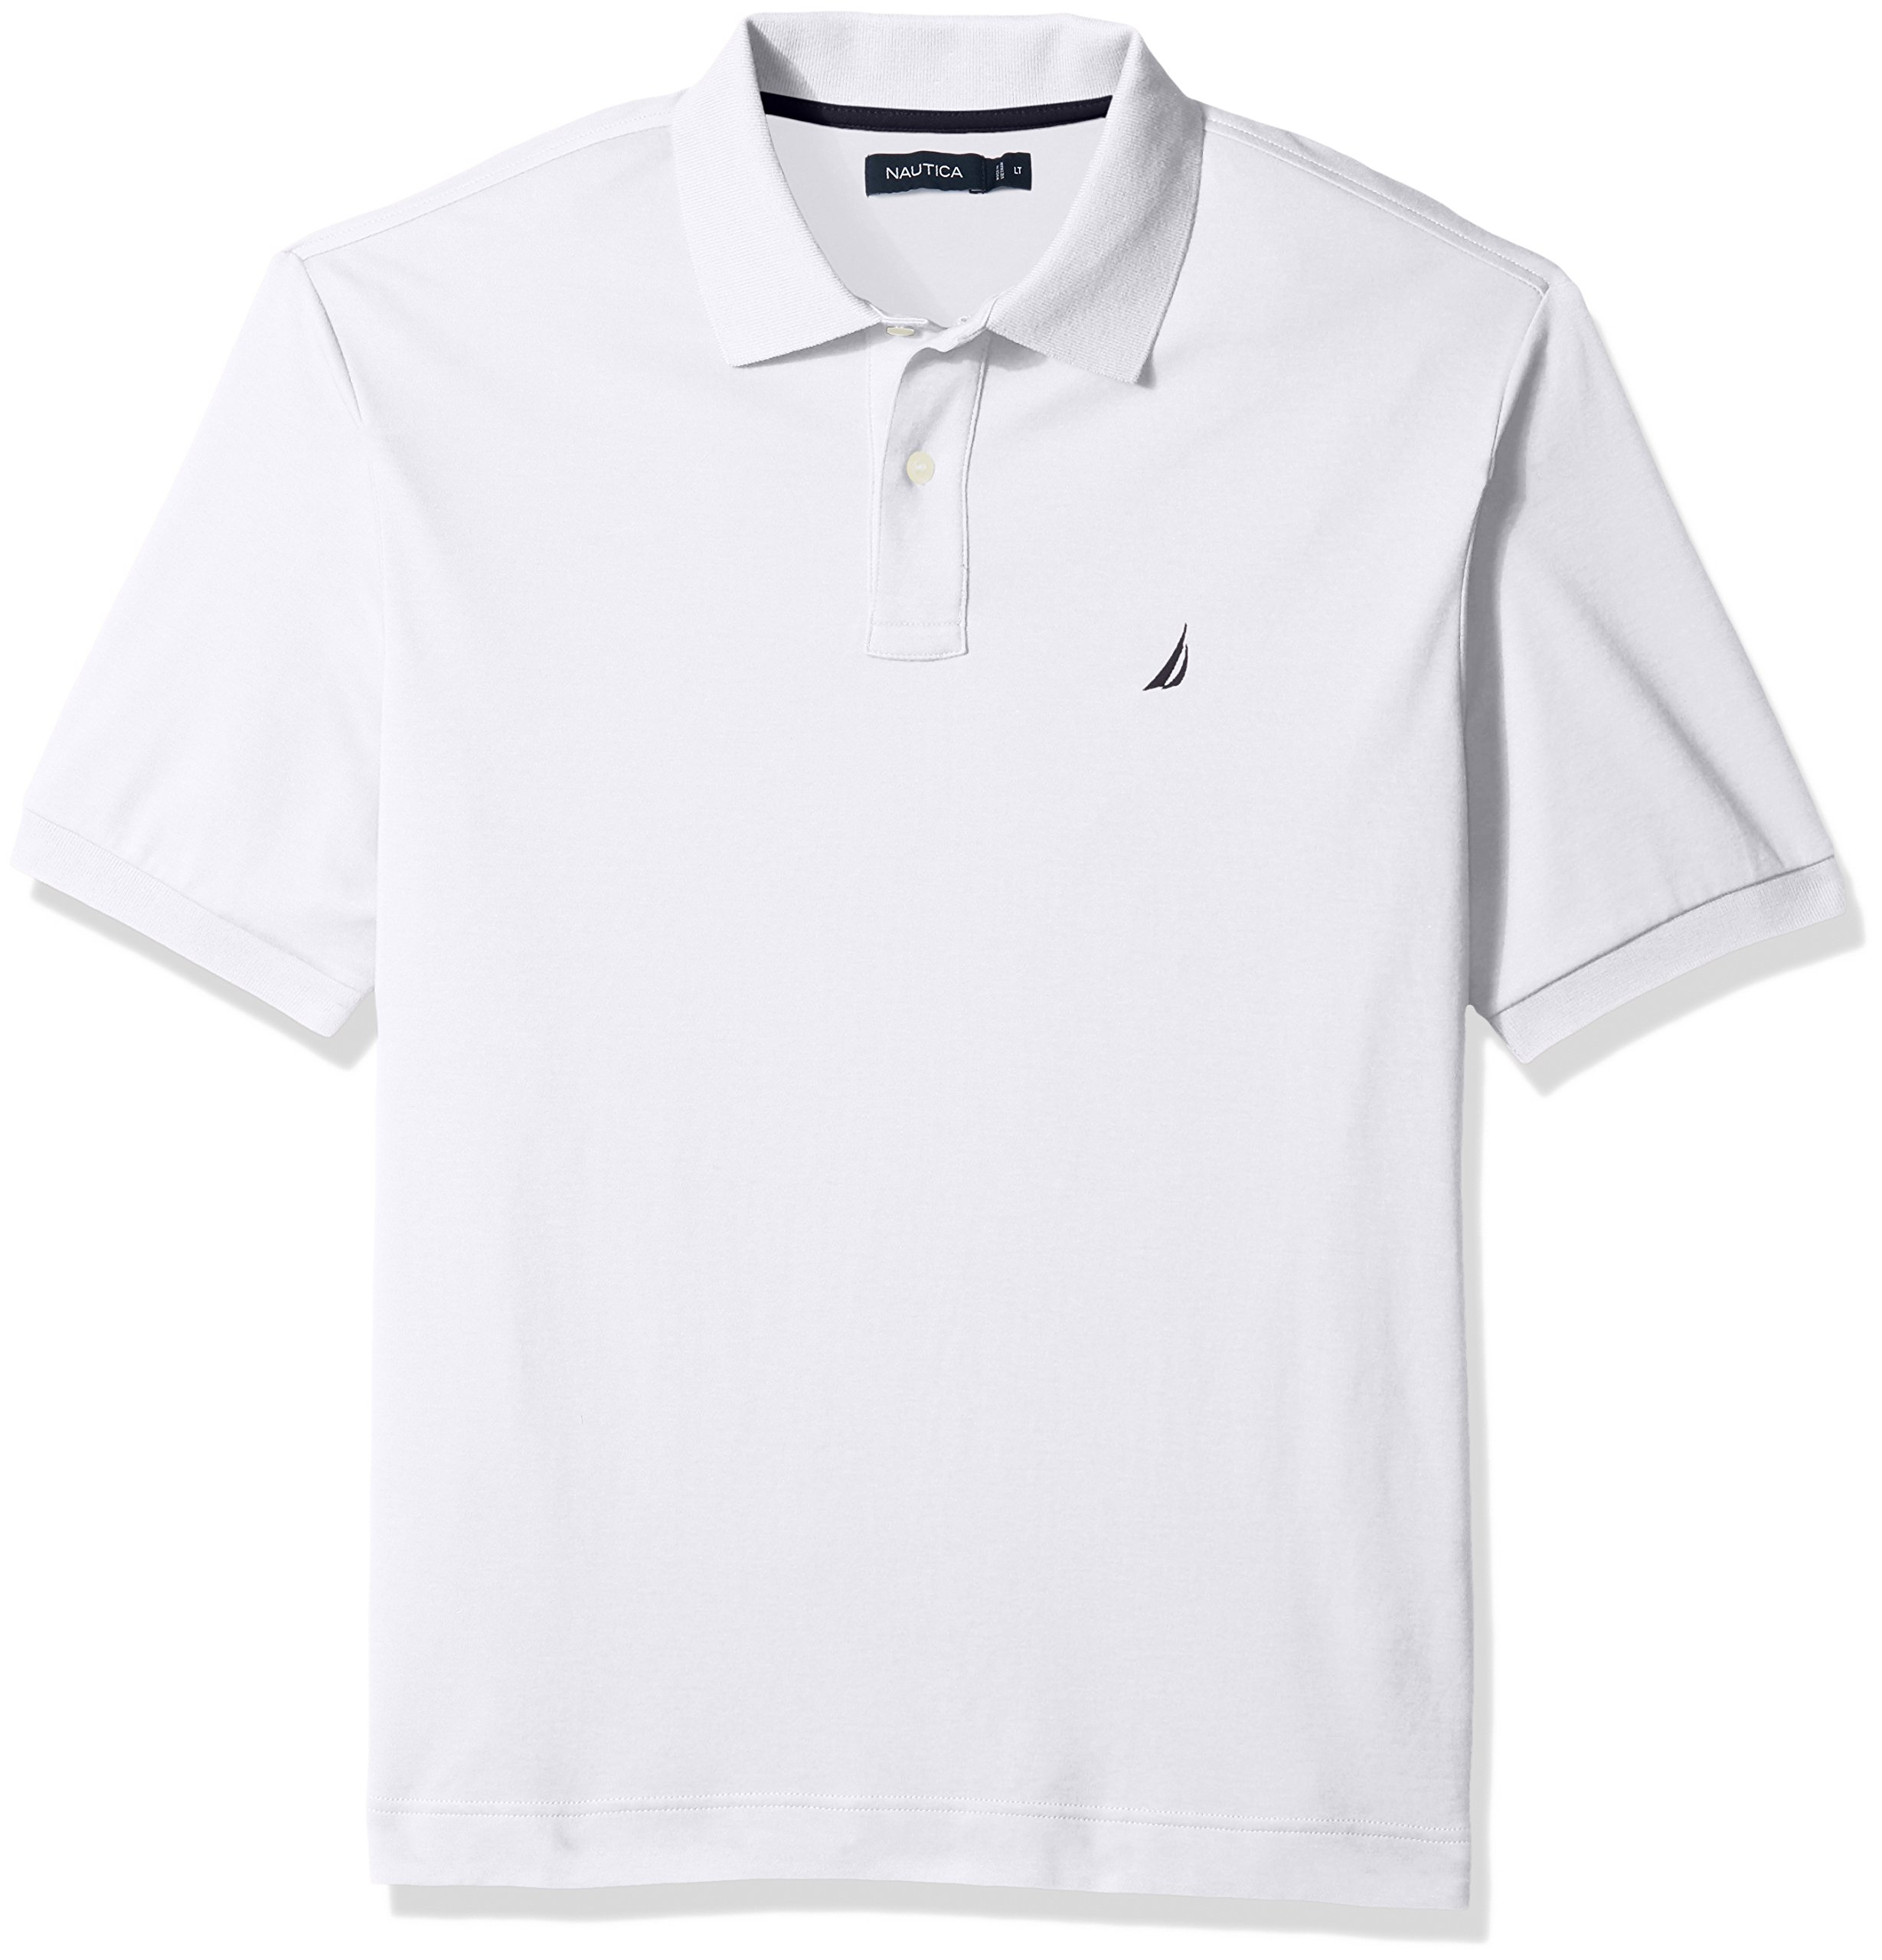 Nautica Men's Classic Fit Short Sleeve Solid Soft Cotton Polo Shirt, bright white, 3X-Large